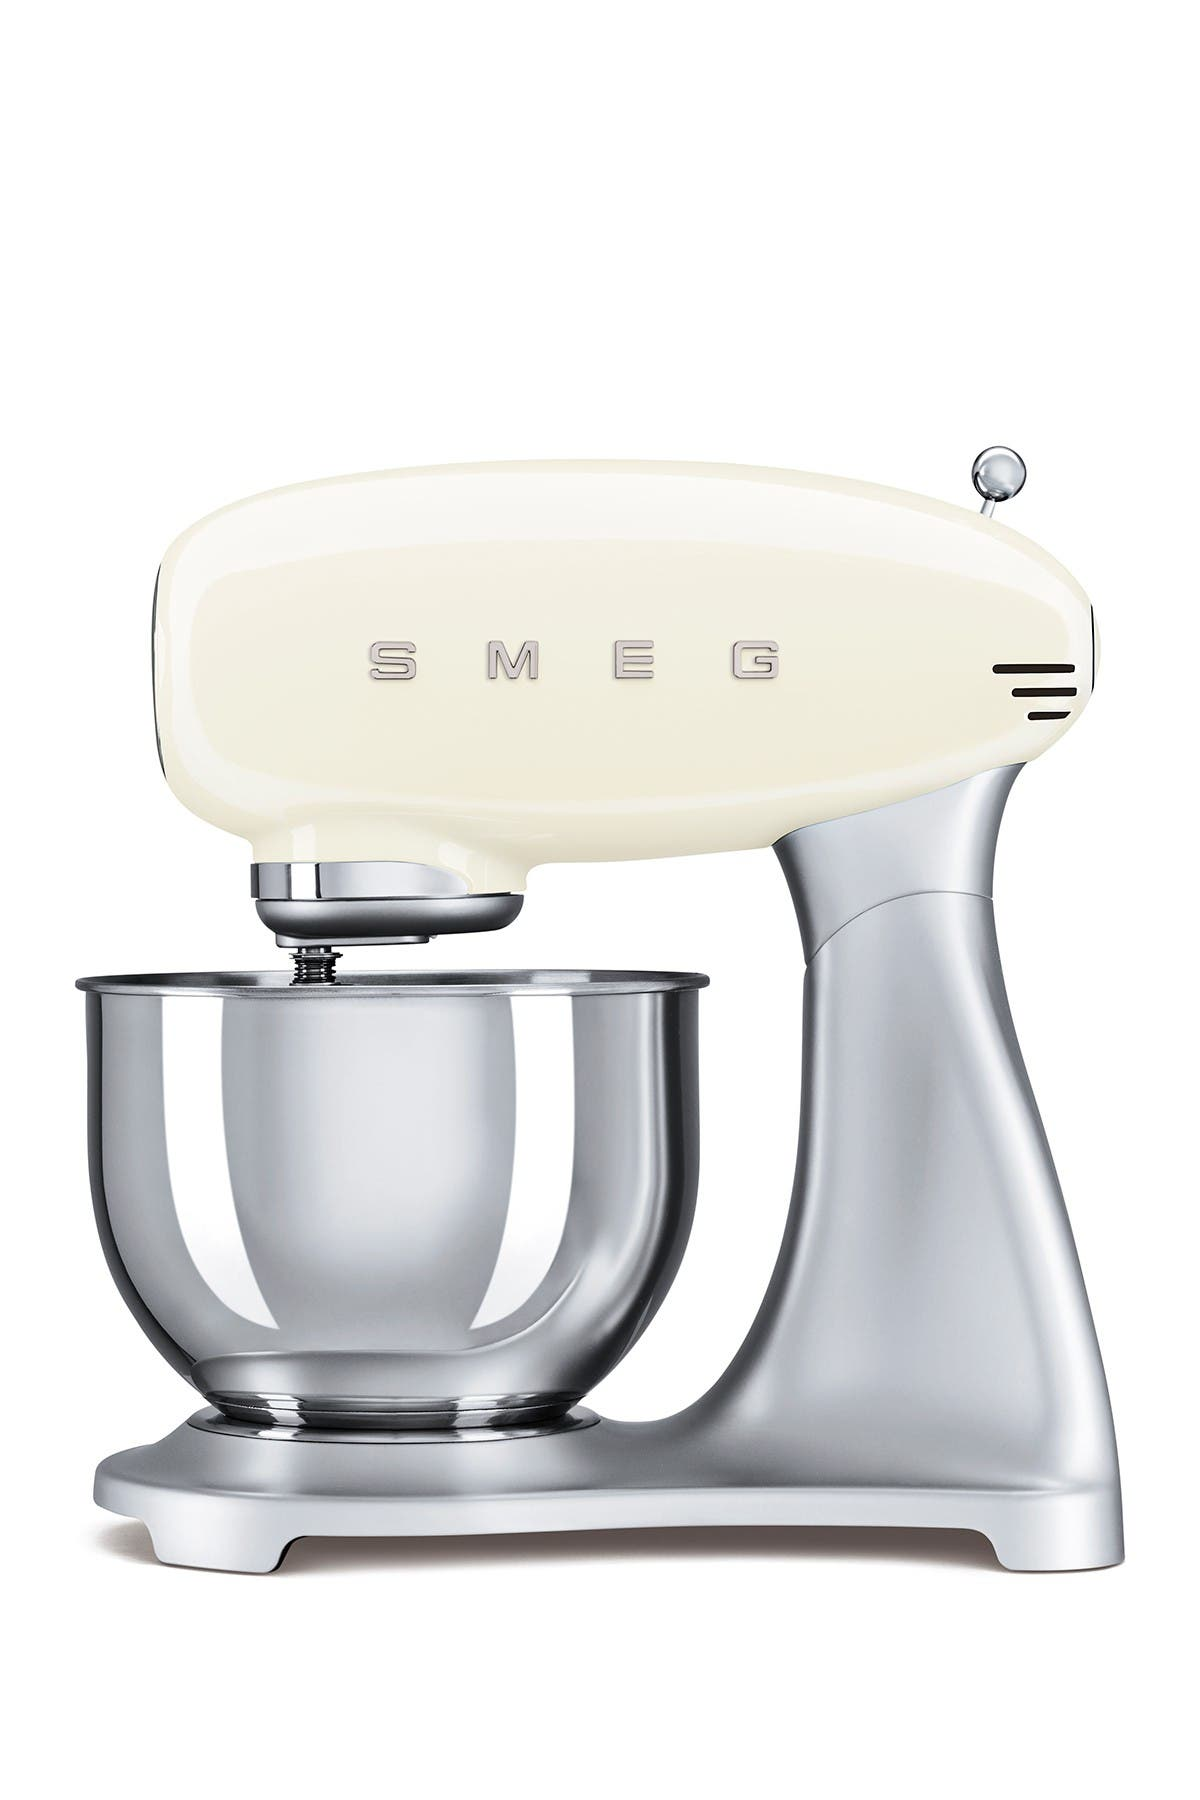 Image of SMEG '50s Retro Stand Mixer - Cream